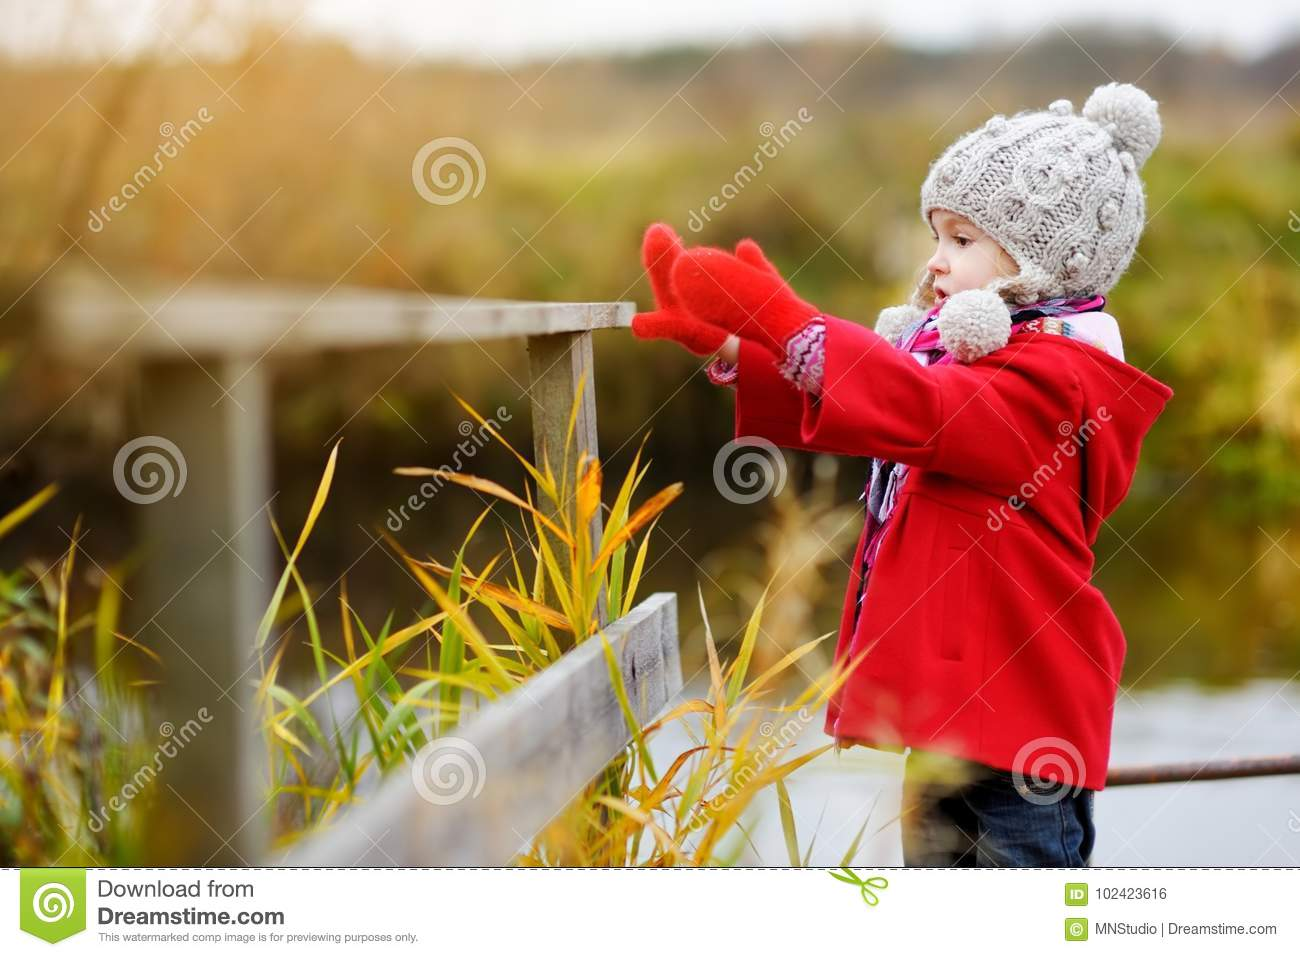 Cute little girl having fun on beautiful autumn day. Happy child playing in autumn park. Kid gathering yellow fall foliage.